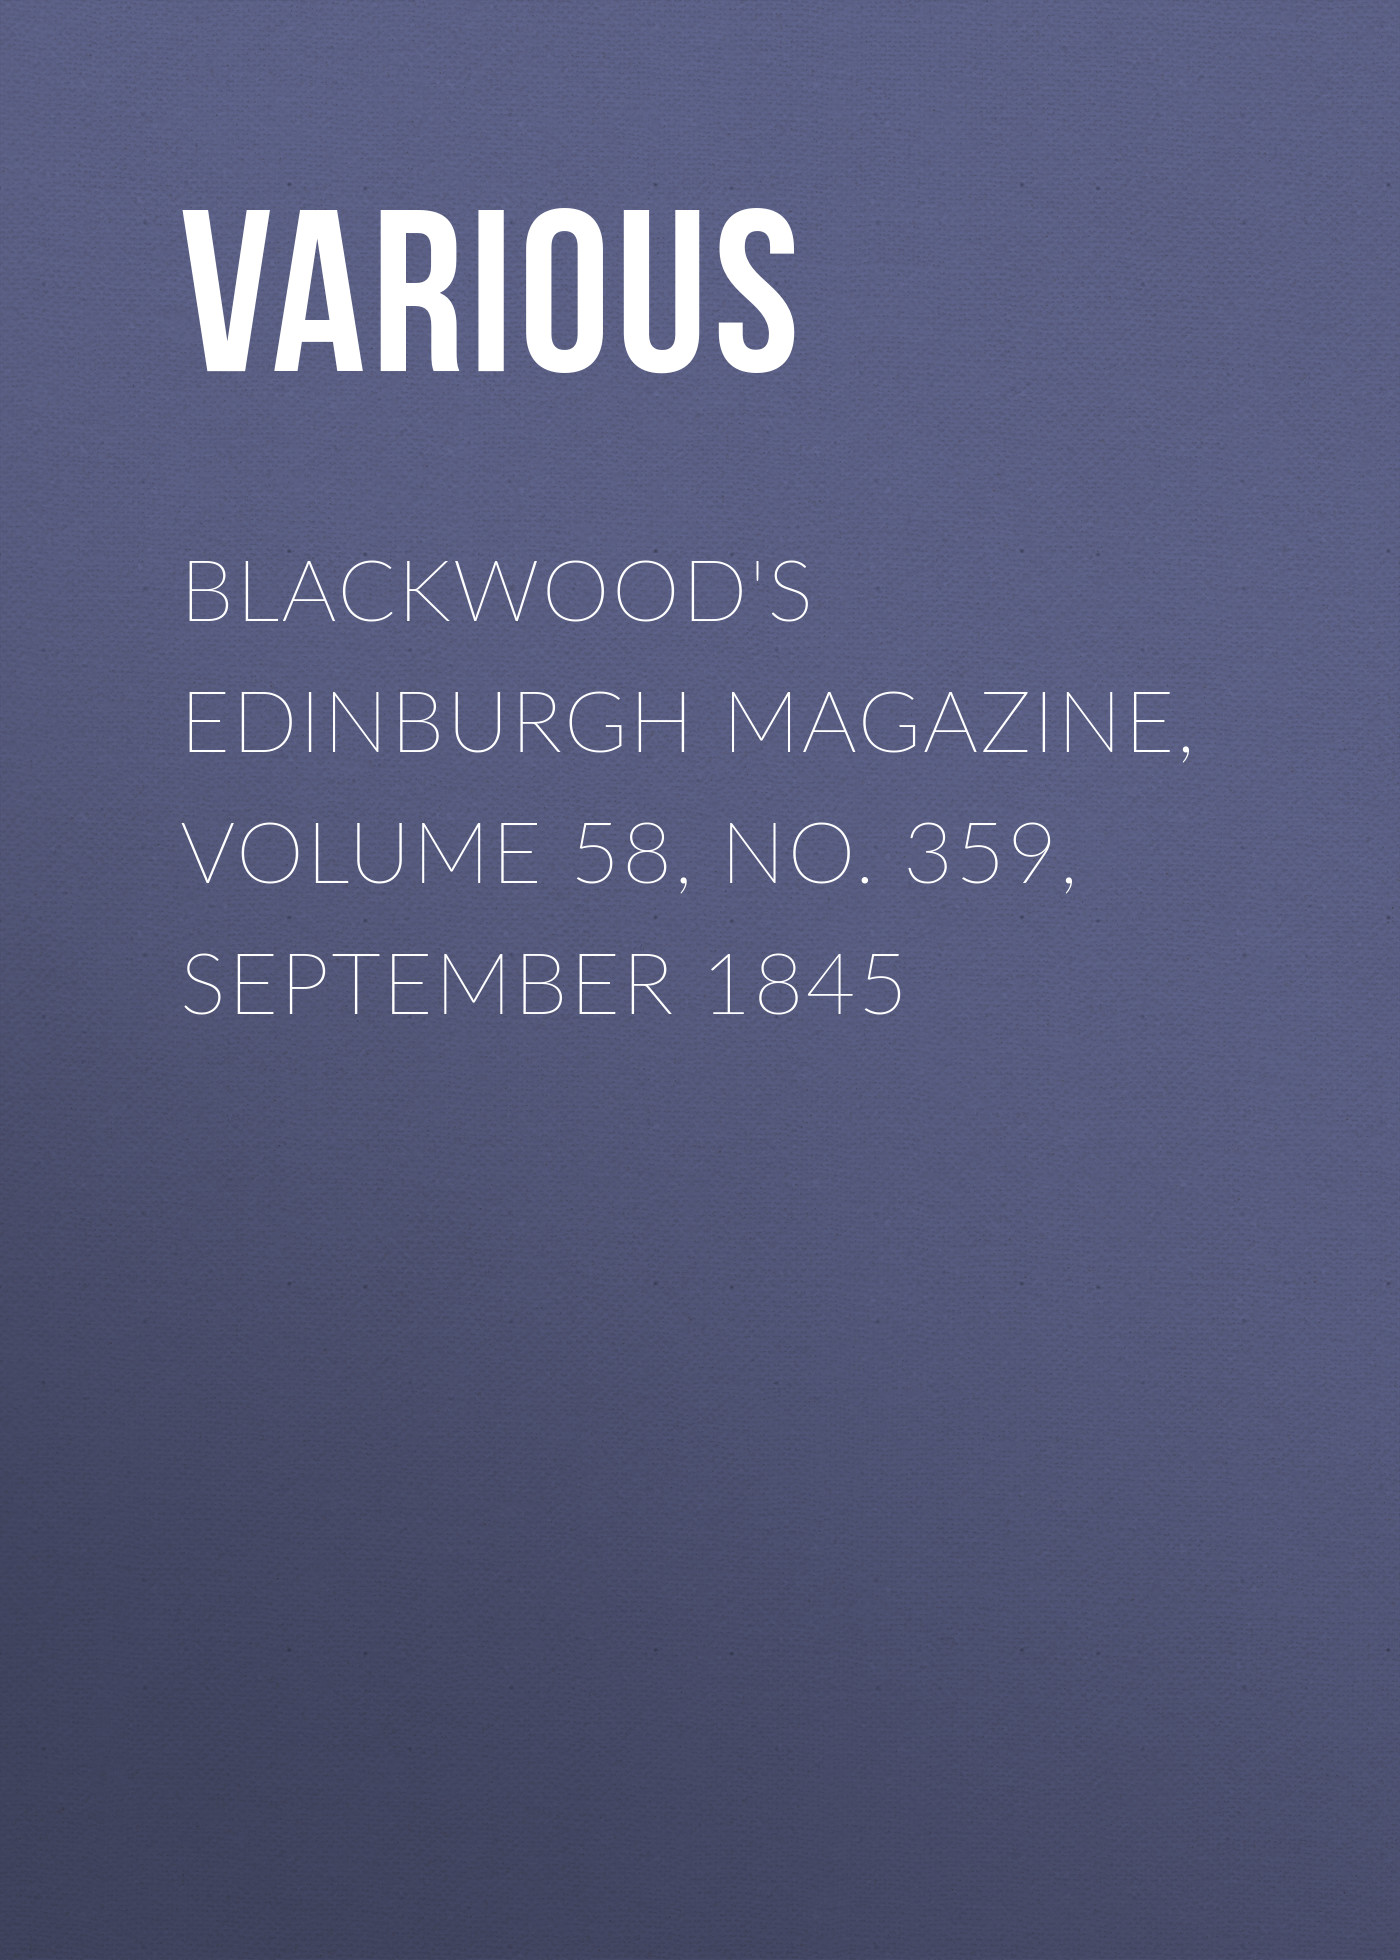 Various Blackwood's Edinburgh Magazine, Volume 58, No. 359, September 1845 various blackwood s edinburgh magazine volume 67 no 411 january 1850